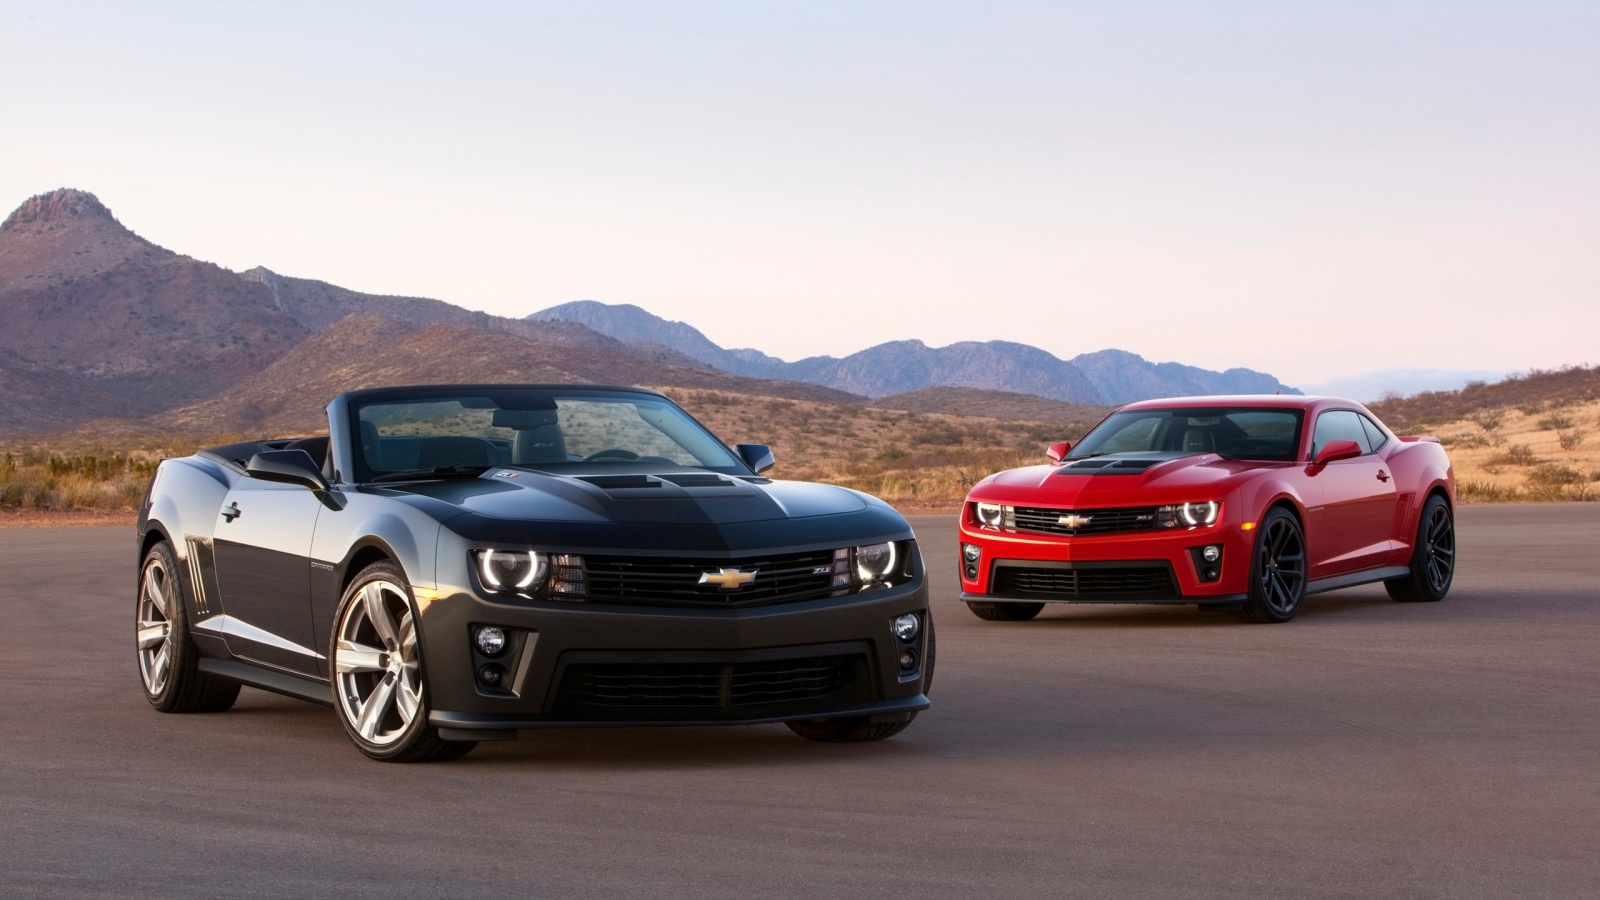 Chevrolet Camaro ZL1 2014 Wallpaper HD Car Wallpapers 1600x900